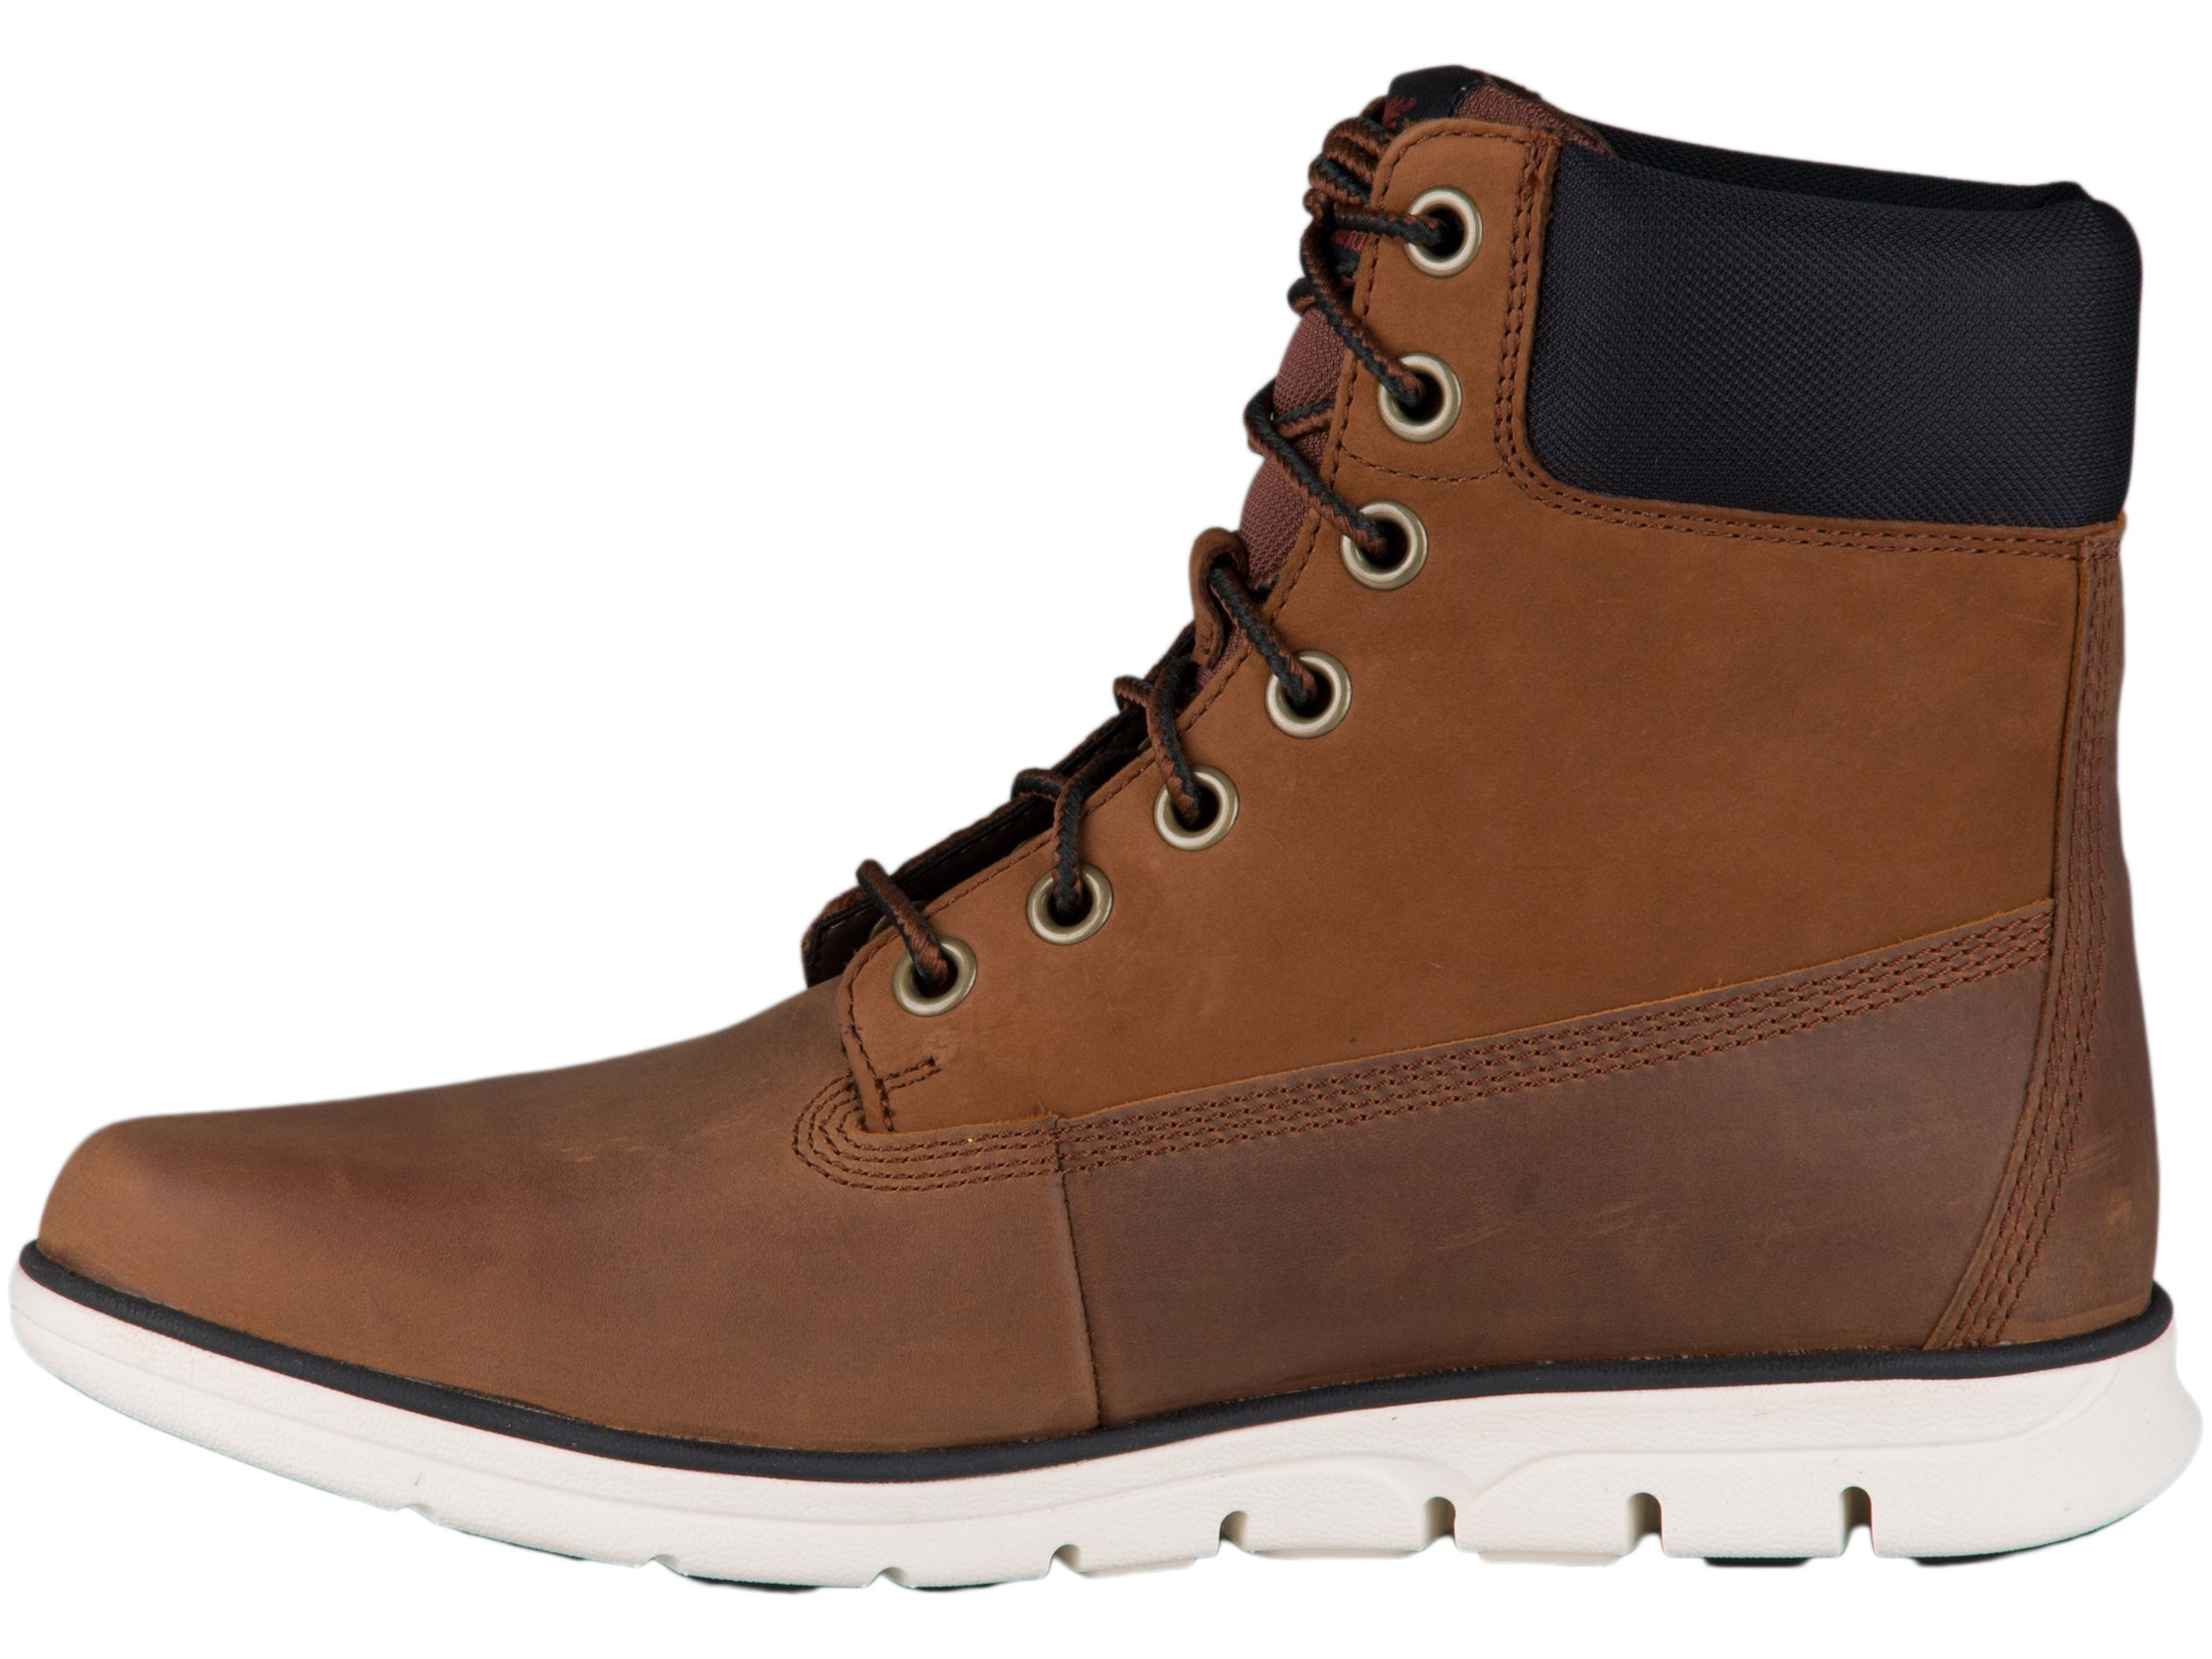 BUTY TIMBERLAND 6 INCH r. 44,5 CLASSIC A13I6